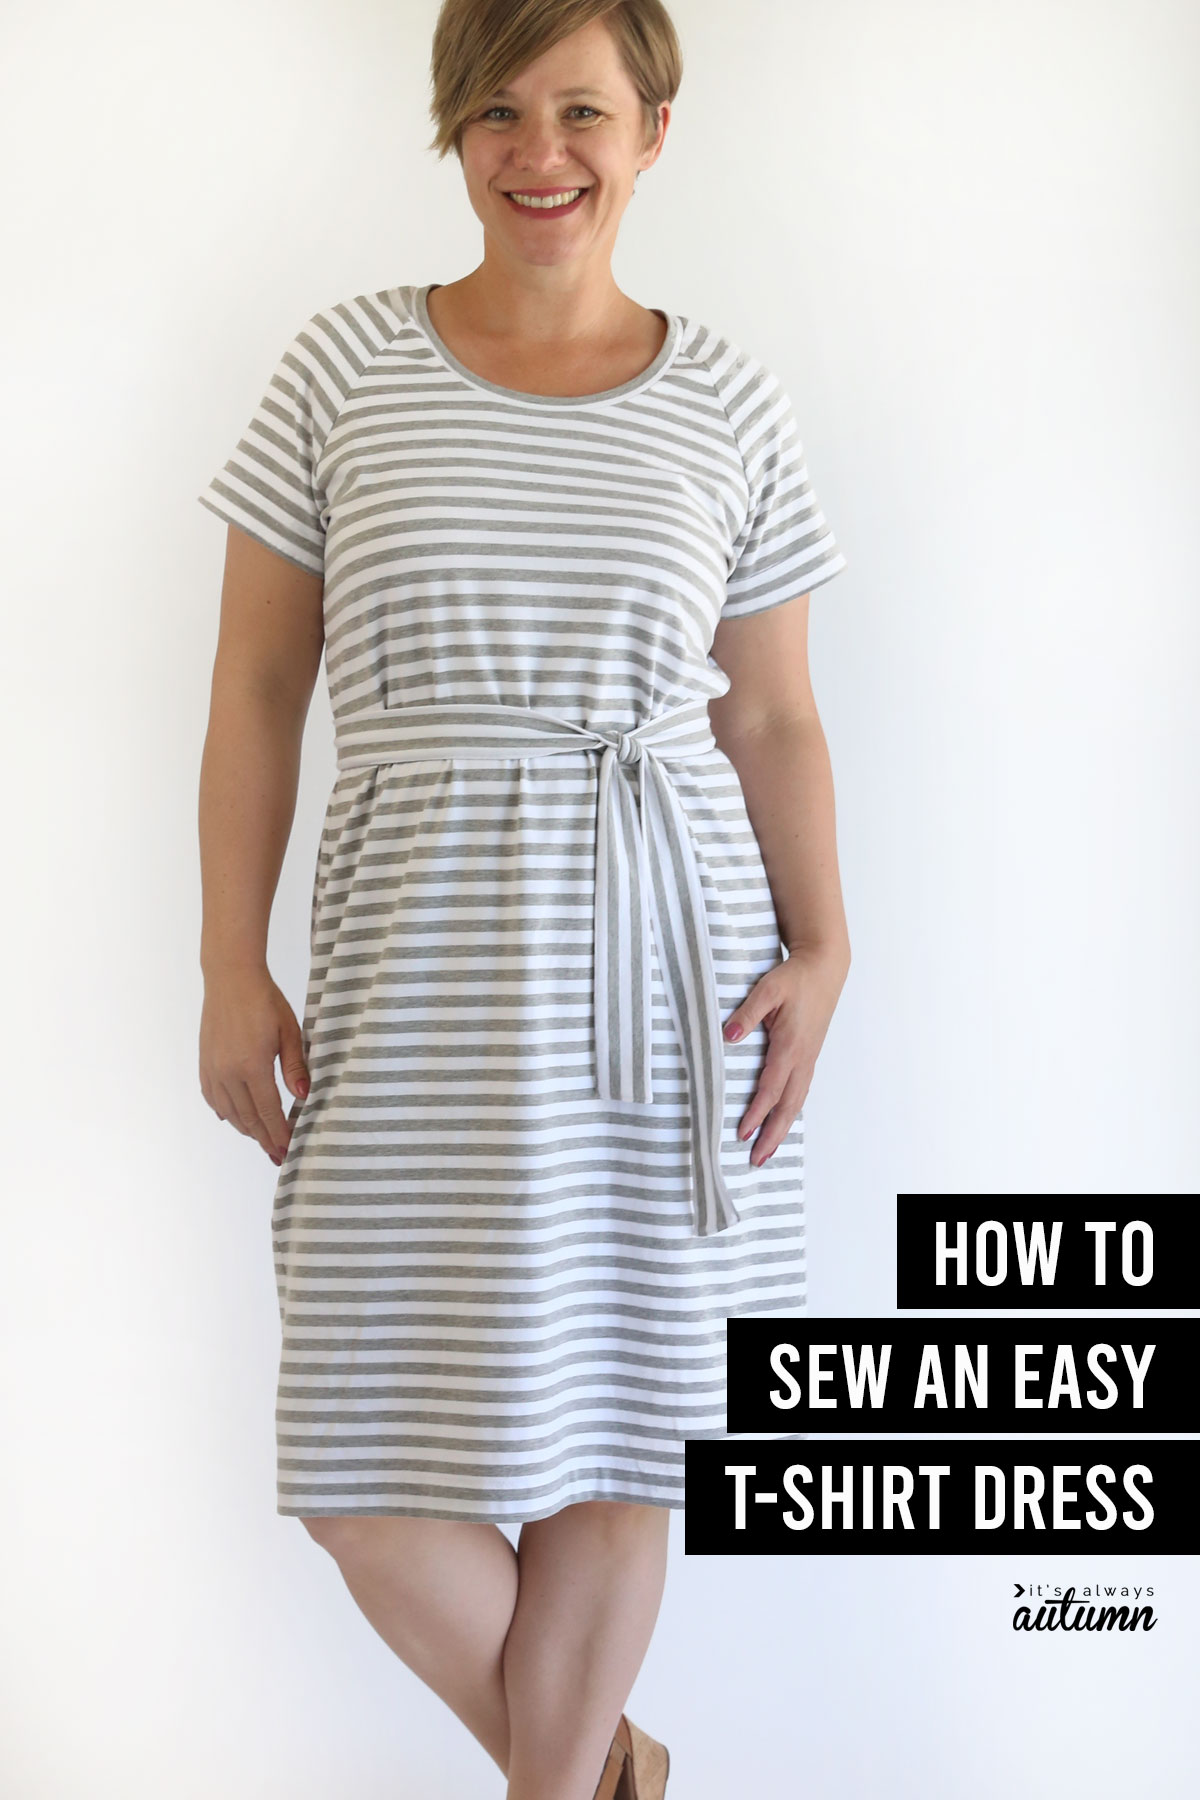 Woman wearing a striped dress with a tie belt; word: how to sew an easy t-shirt dress